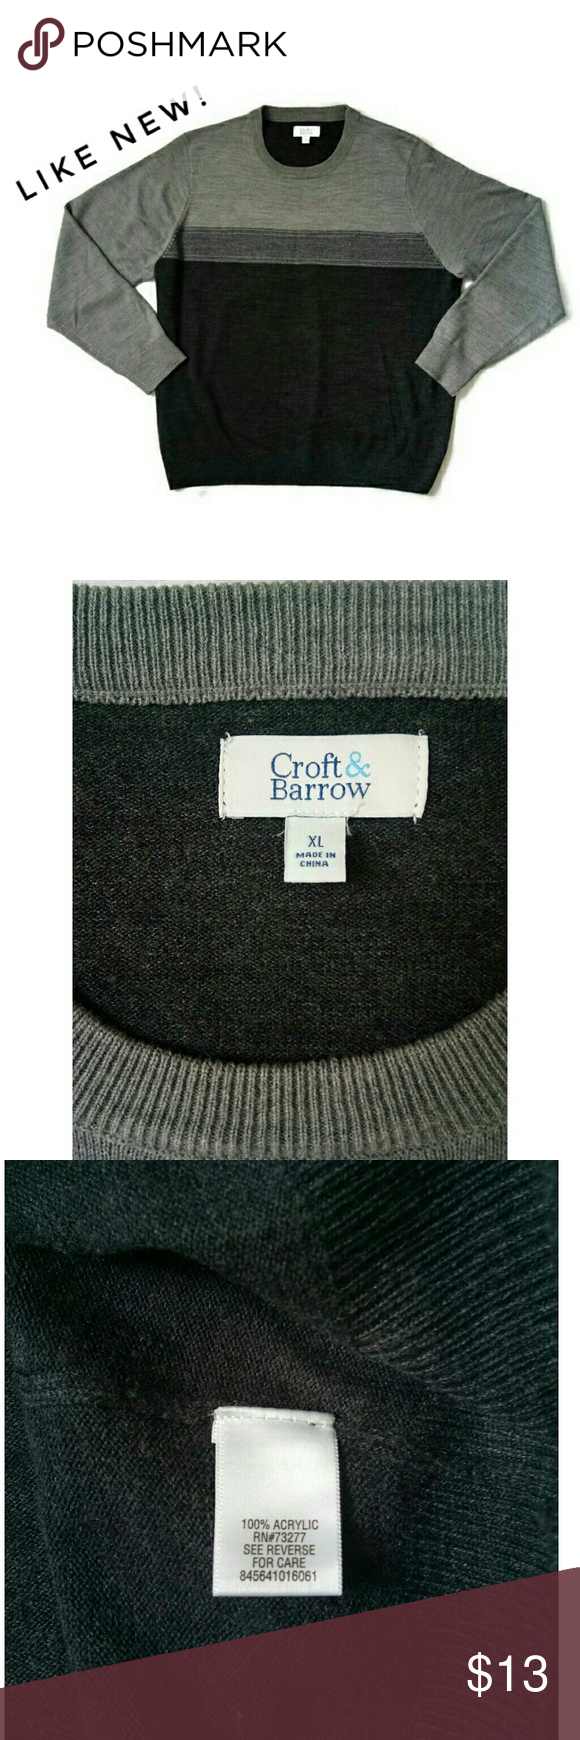 Men S Croft Barrow Crewneck Sweater Like New My Husband Washed And Tried It On Once It S Too Short For Him 100 Crew Neck Sweater Clothes Design Sweaters [ 1740 x 580 Pixel ]